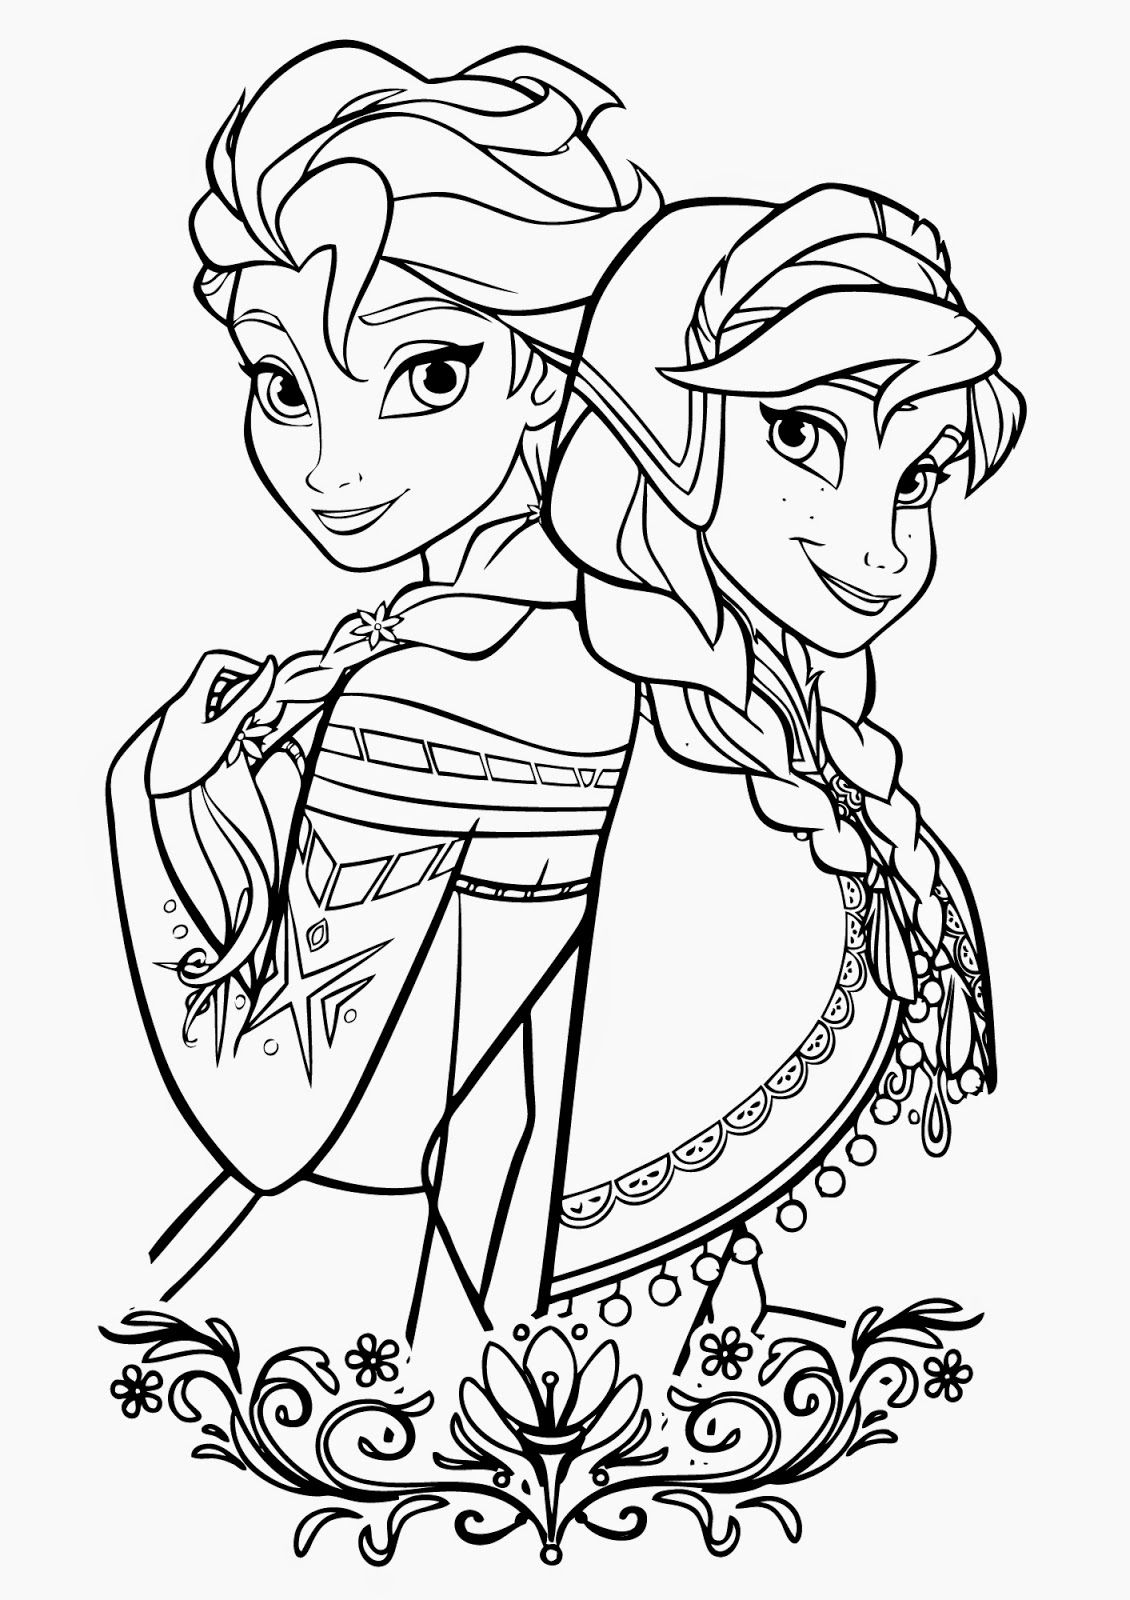 Long e coloring pages - Explore Frozen Coloring Sheets And More